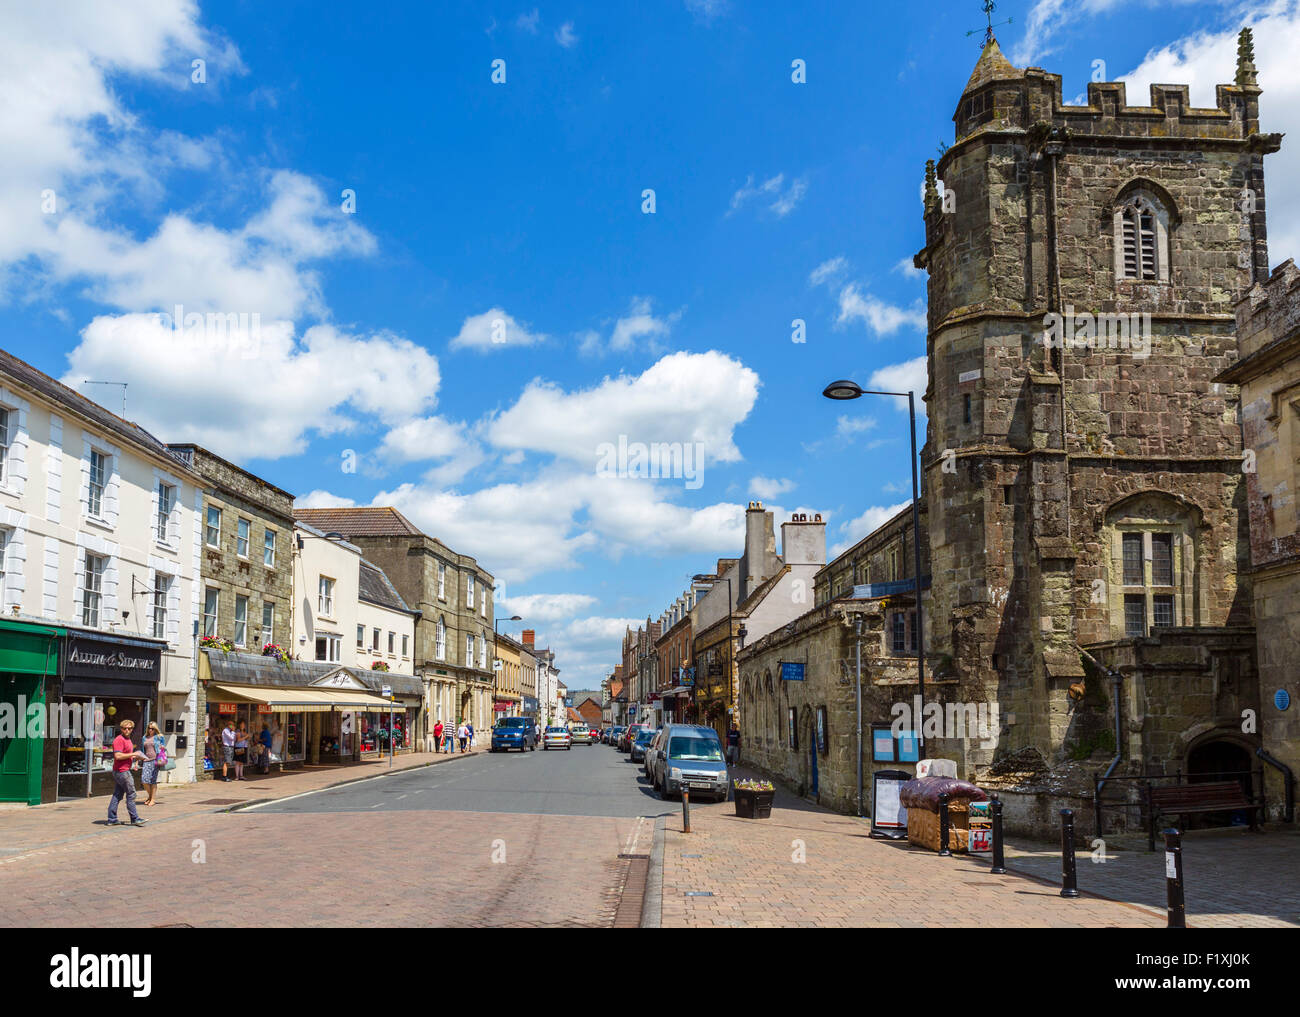 The High Street with Saint Peter's Church to the right, Shaftesbury, Dorset, England, UK - Stock Image